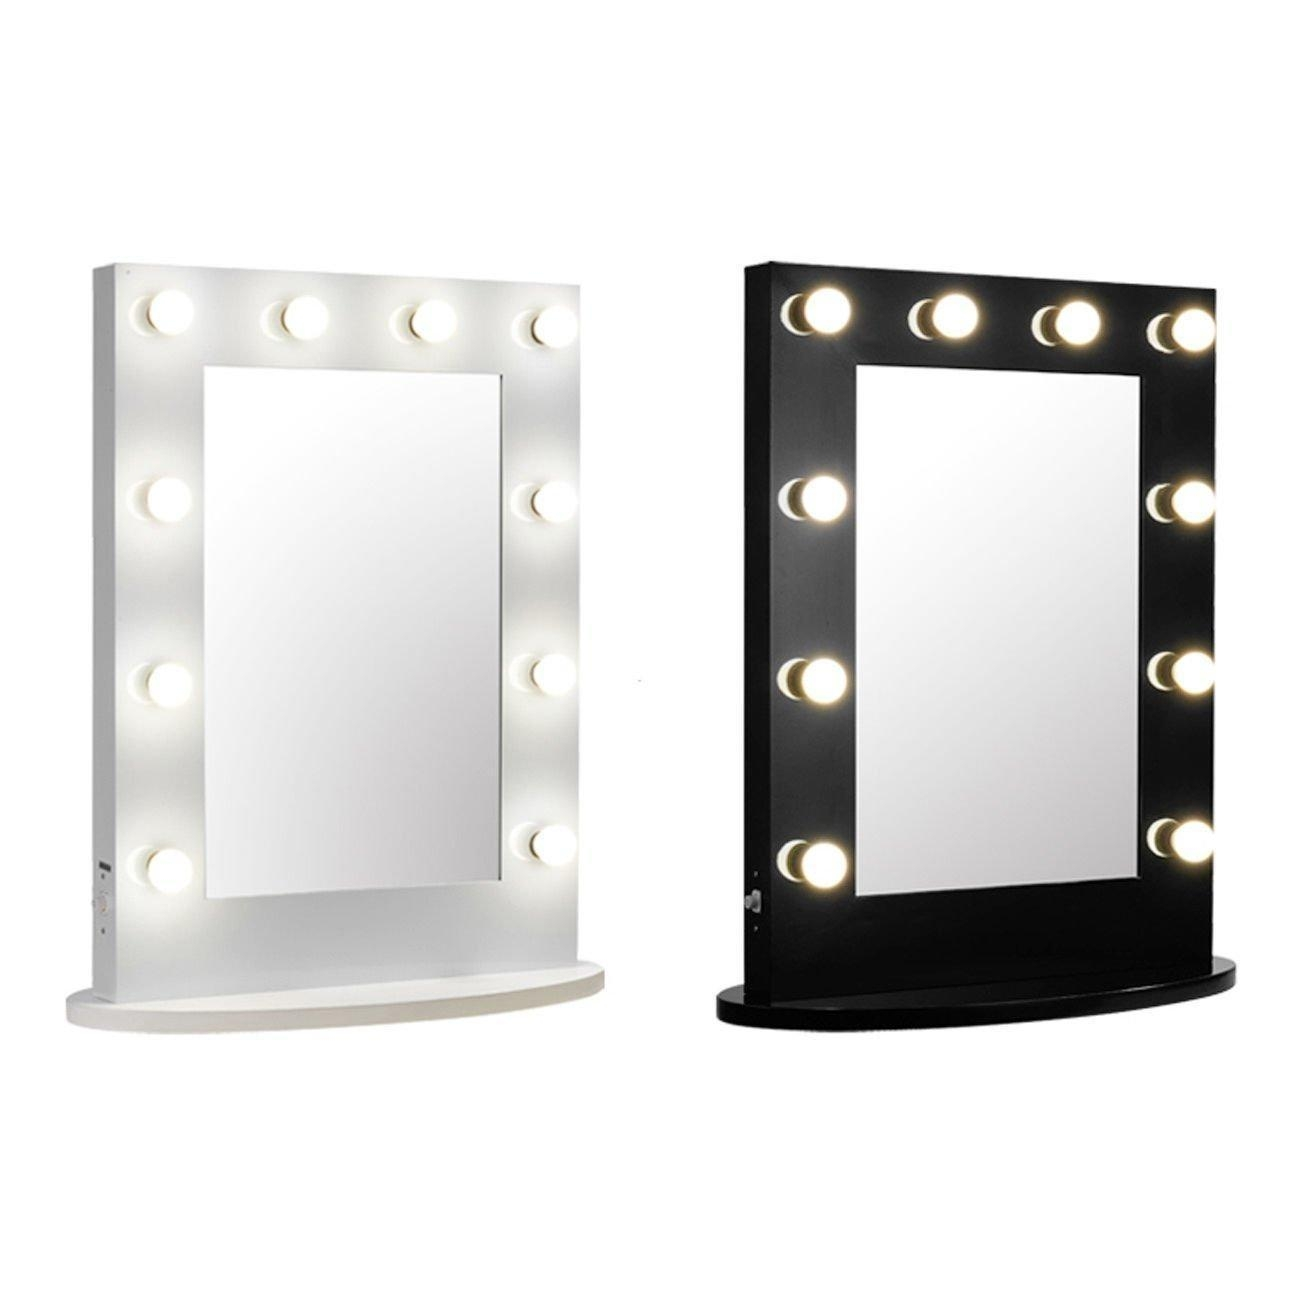 Top 10 Wall Lighted Makeup Mirror 2017 | Warisan Lighting In Lit Makeup Mirrors (Image 20 of 20)